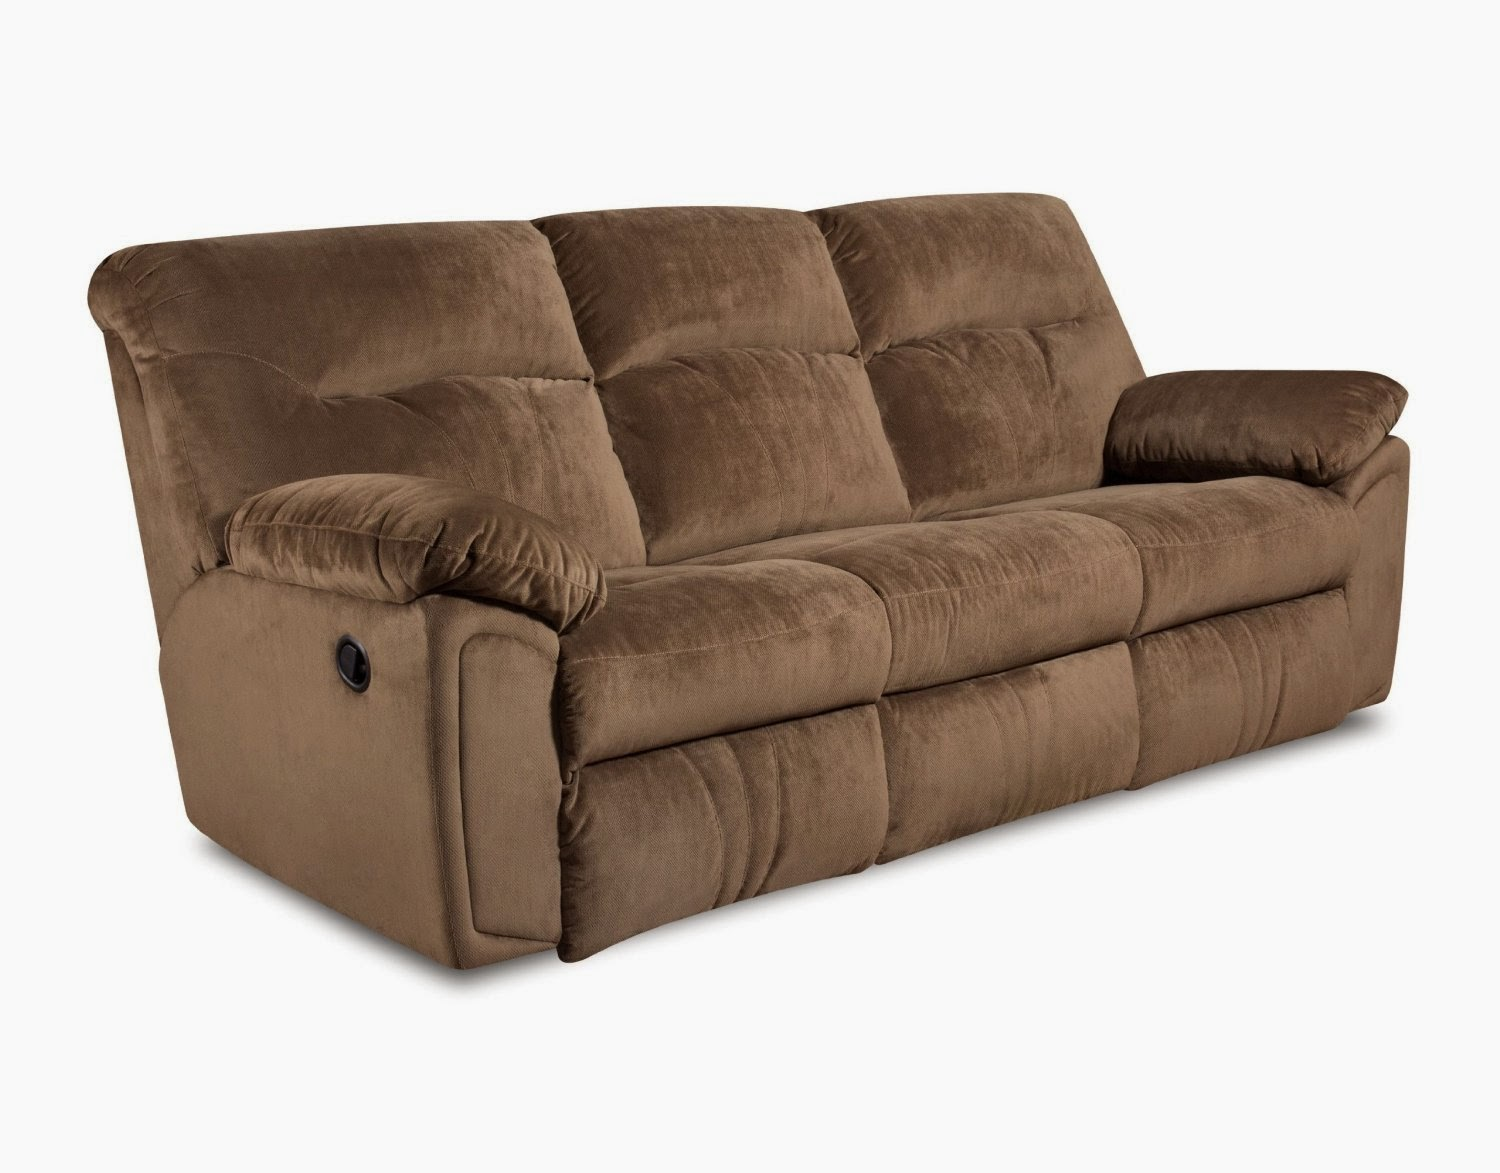 Reclining sofa loveseat and chair sets southern motion reclining leather sofa Leather reclining sofa loveseat